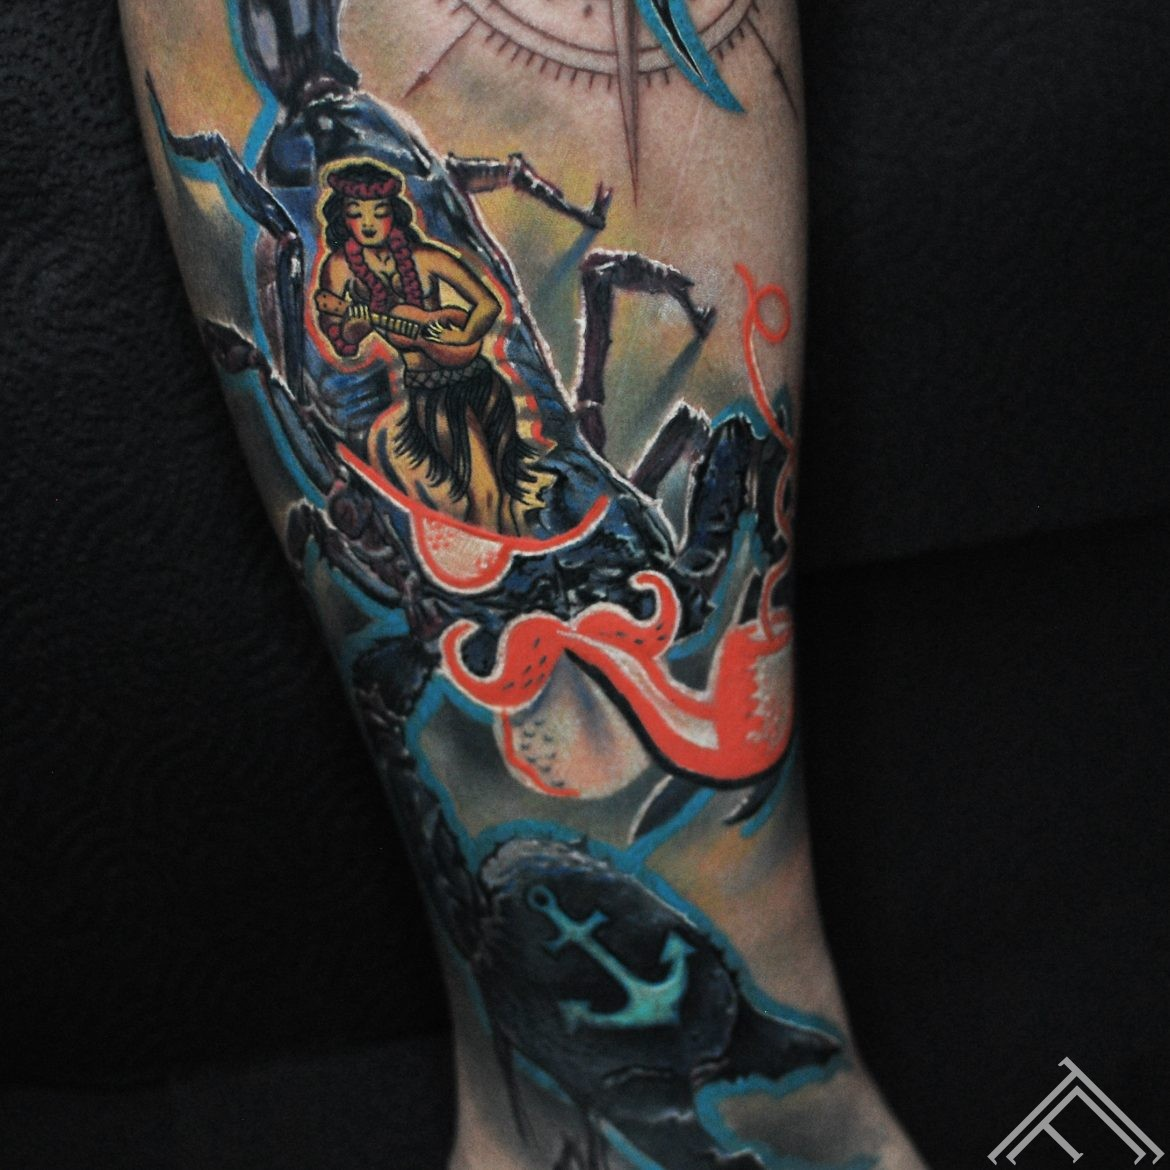 sailorjerry-sailor-pirate-scorpion-compass-ancor-skorpions-jurnieks-zvejnieks-copmanis-barmenis-rums-rum-tattoo-tetovejums-tattoofrequency-riga-art-closeup-